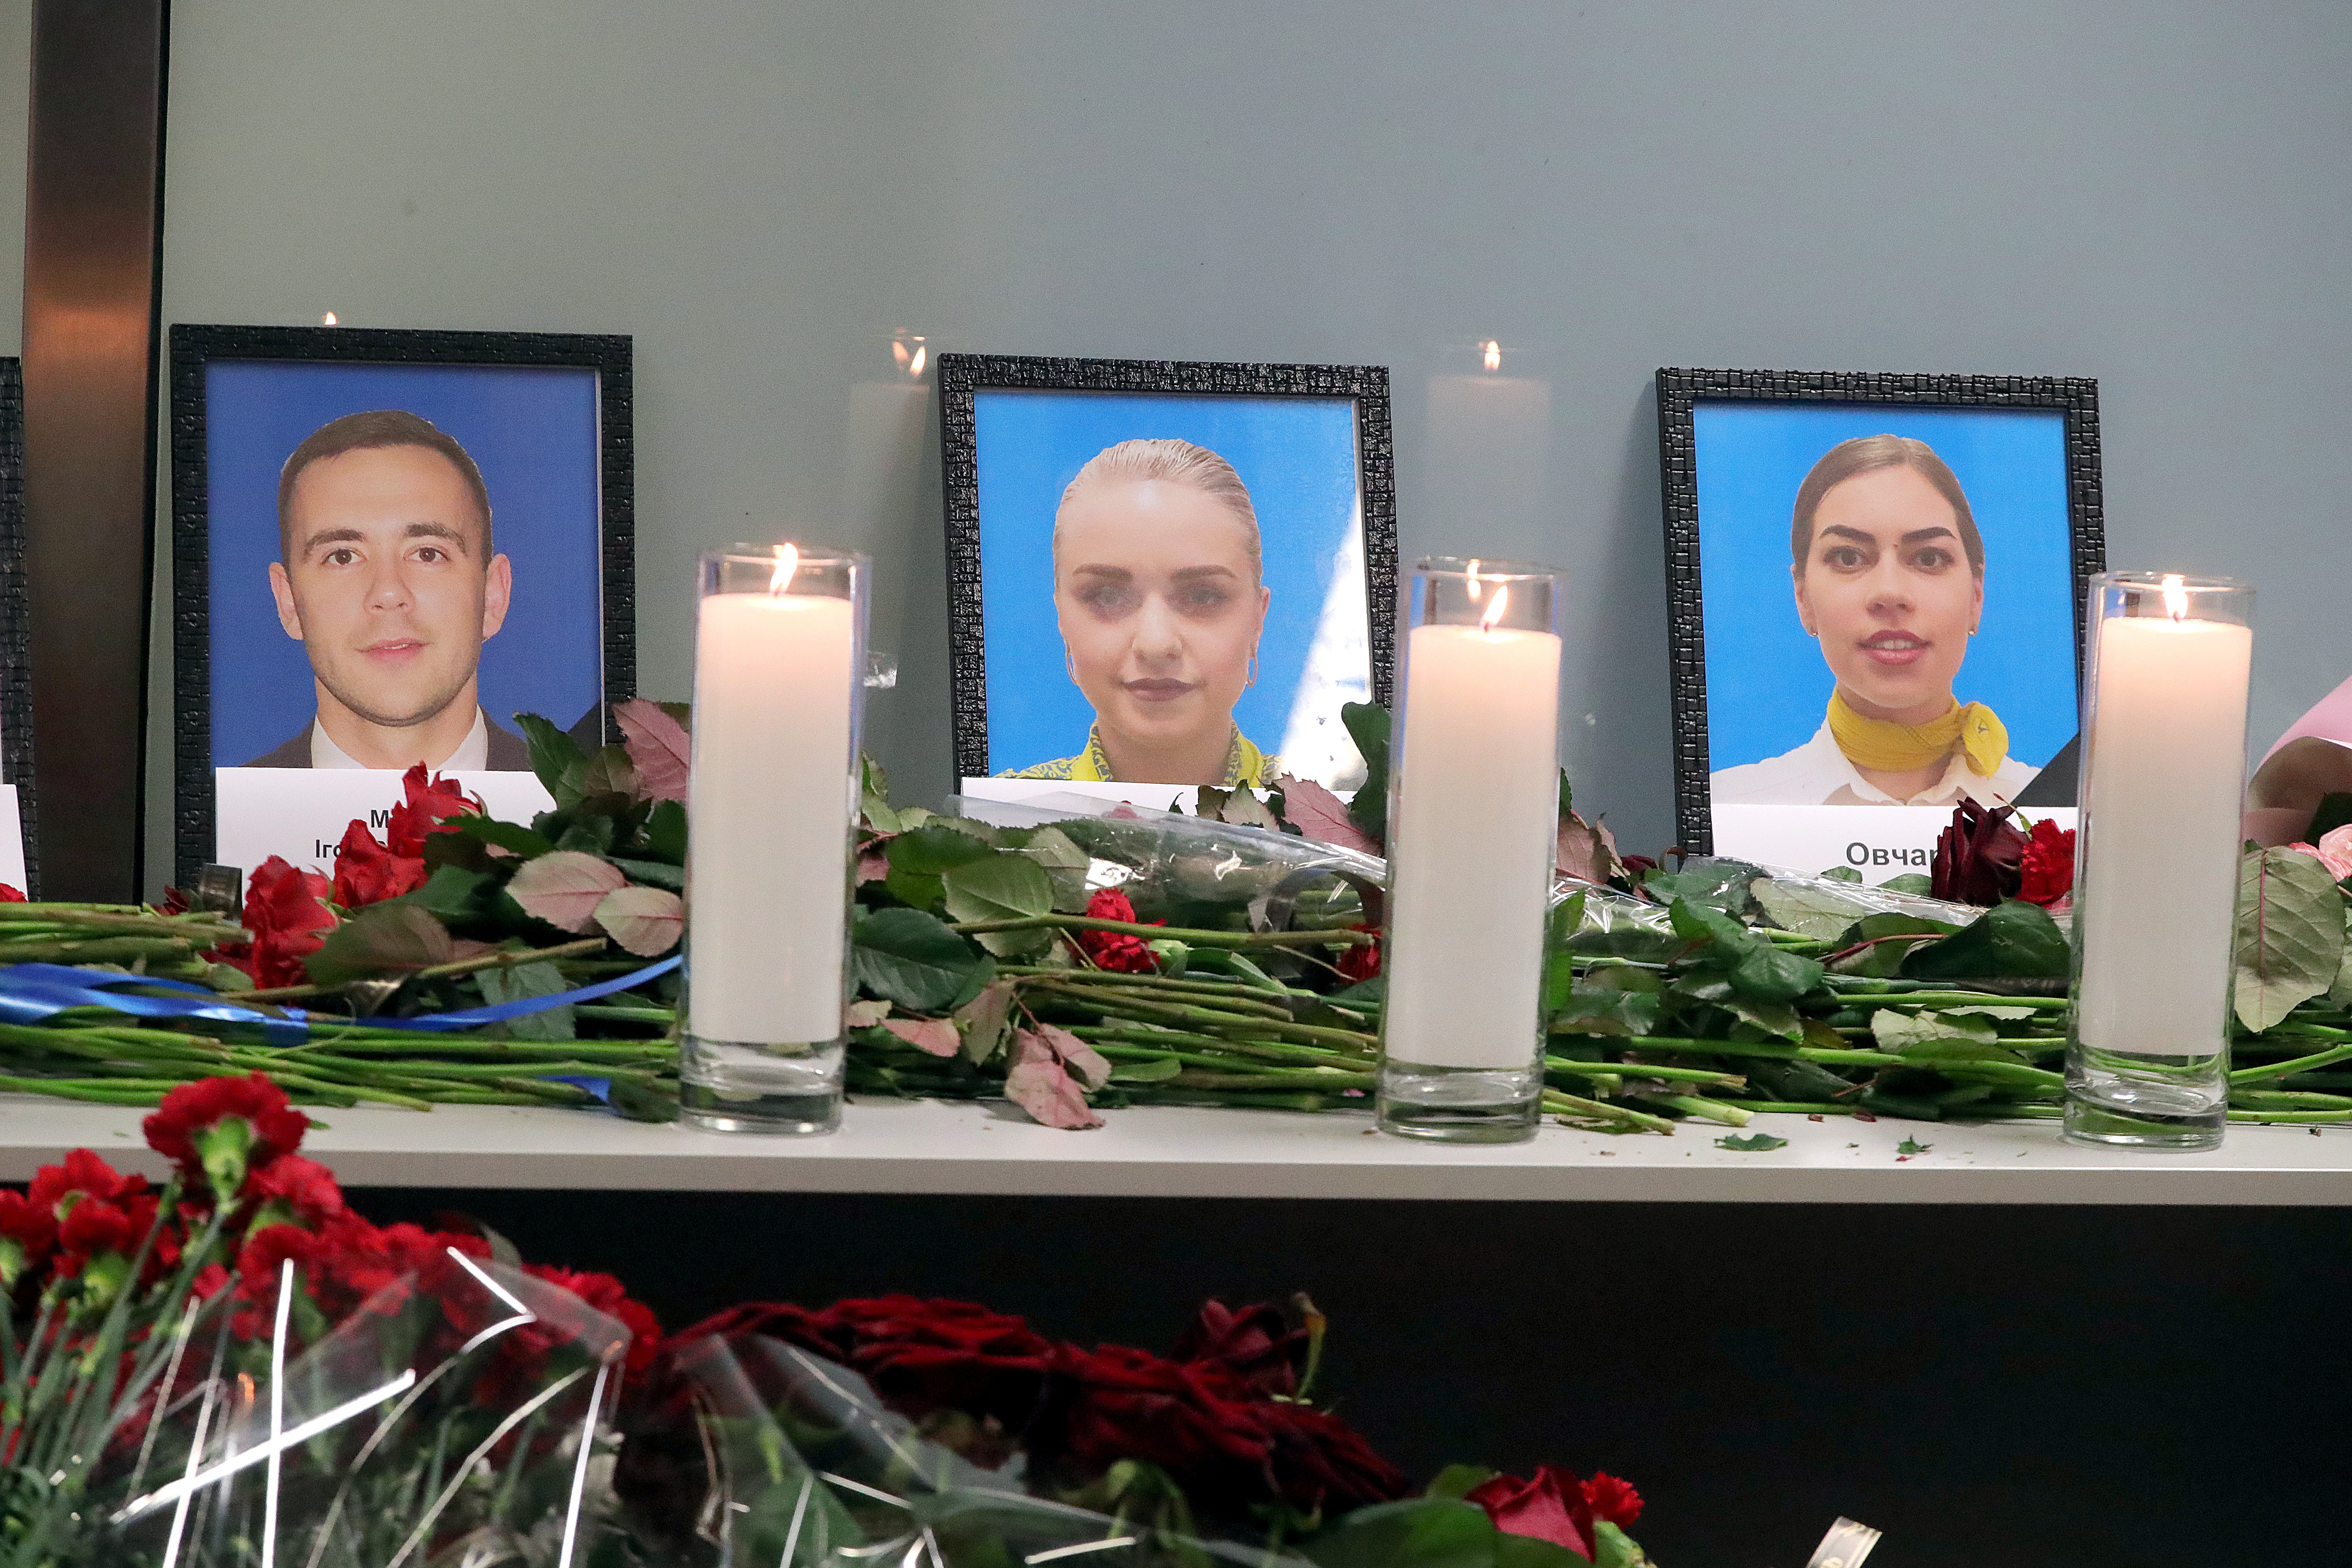 Candles and flowers are pictured at the portraits of flight attendants Ihor Matkov, Yuliia Salohub and Valeriia Ovcharuk (L to R) who were among 176 people on board of the Ukraine International Airlines Boeing 737 (PS752) killed in the Jan. 8 plane crash in Iran.